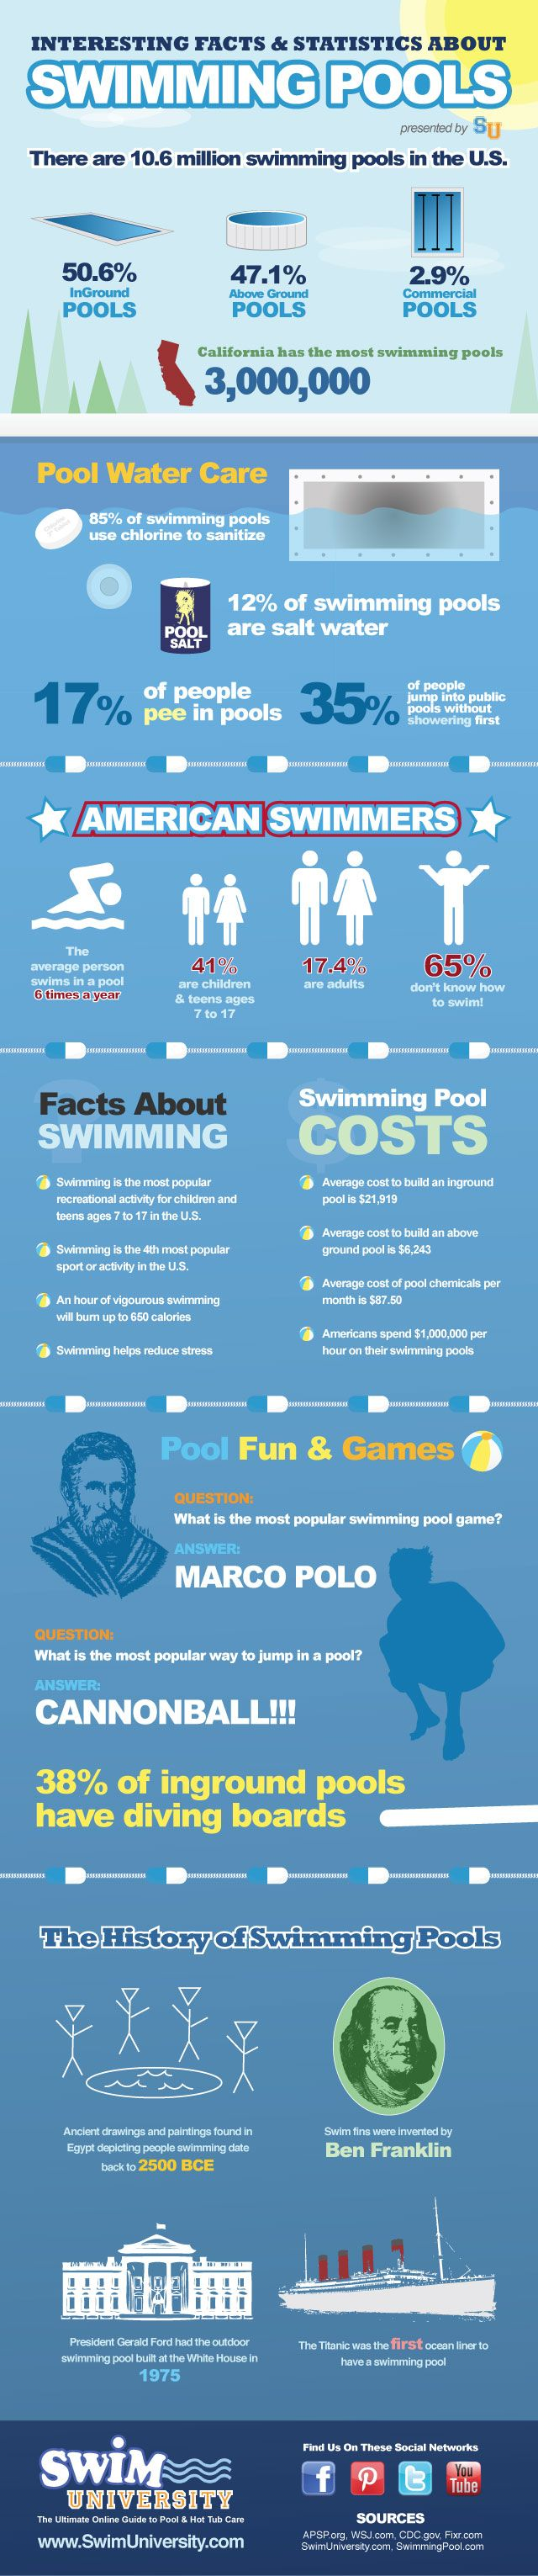 Take A Look At Our Latest Infographic Which Will Give You Facts And Statistics About Swimming